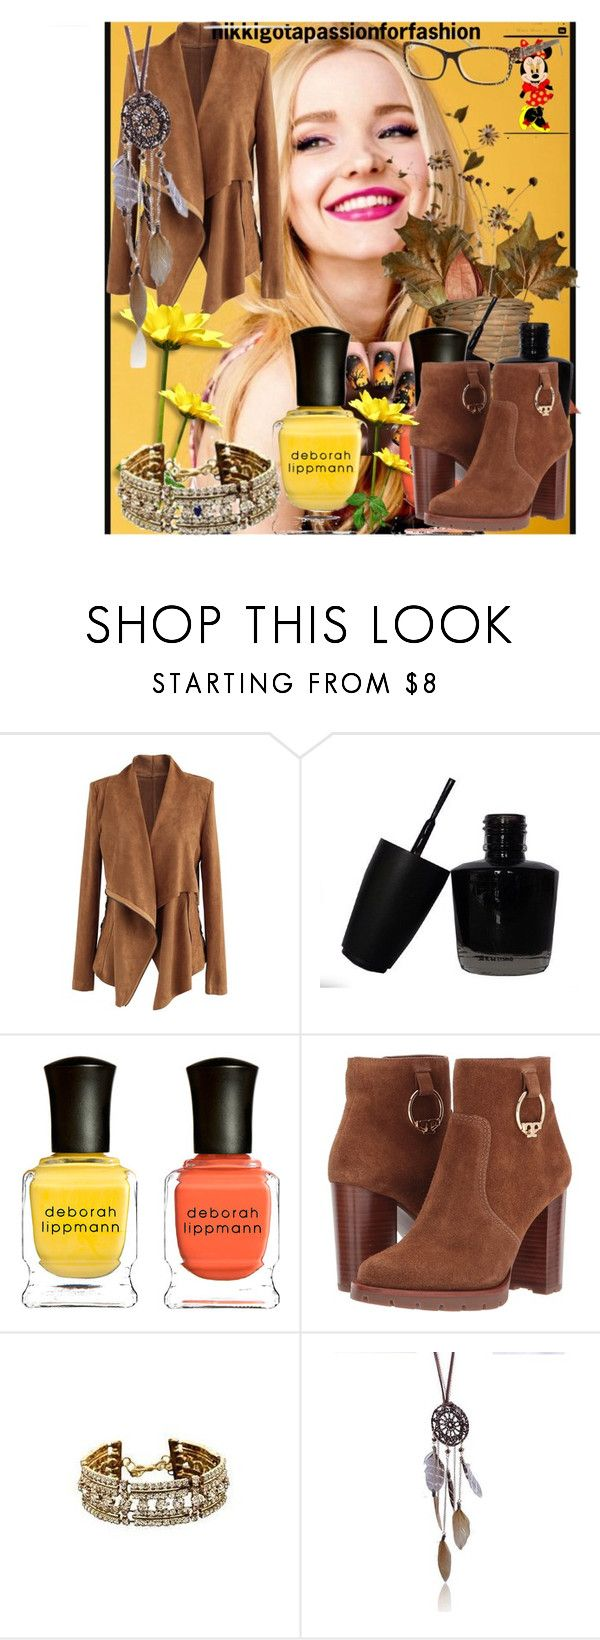 nikkigotapassionforfashion#9 by sabahetasaric on Polyvore featuring Chicwish, Tory Burch and Deborah Lippmann